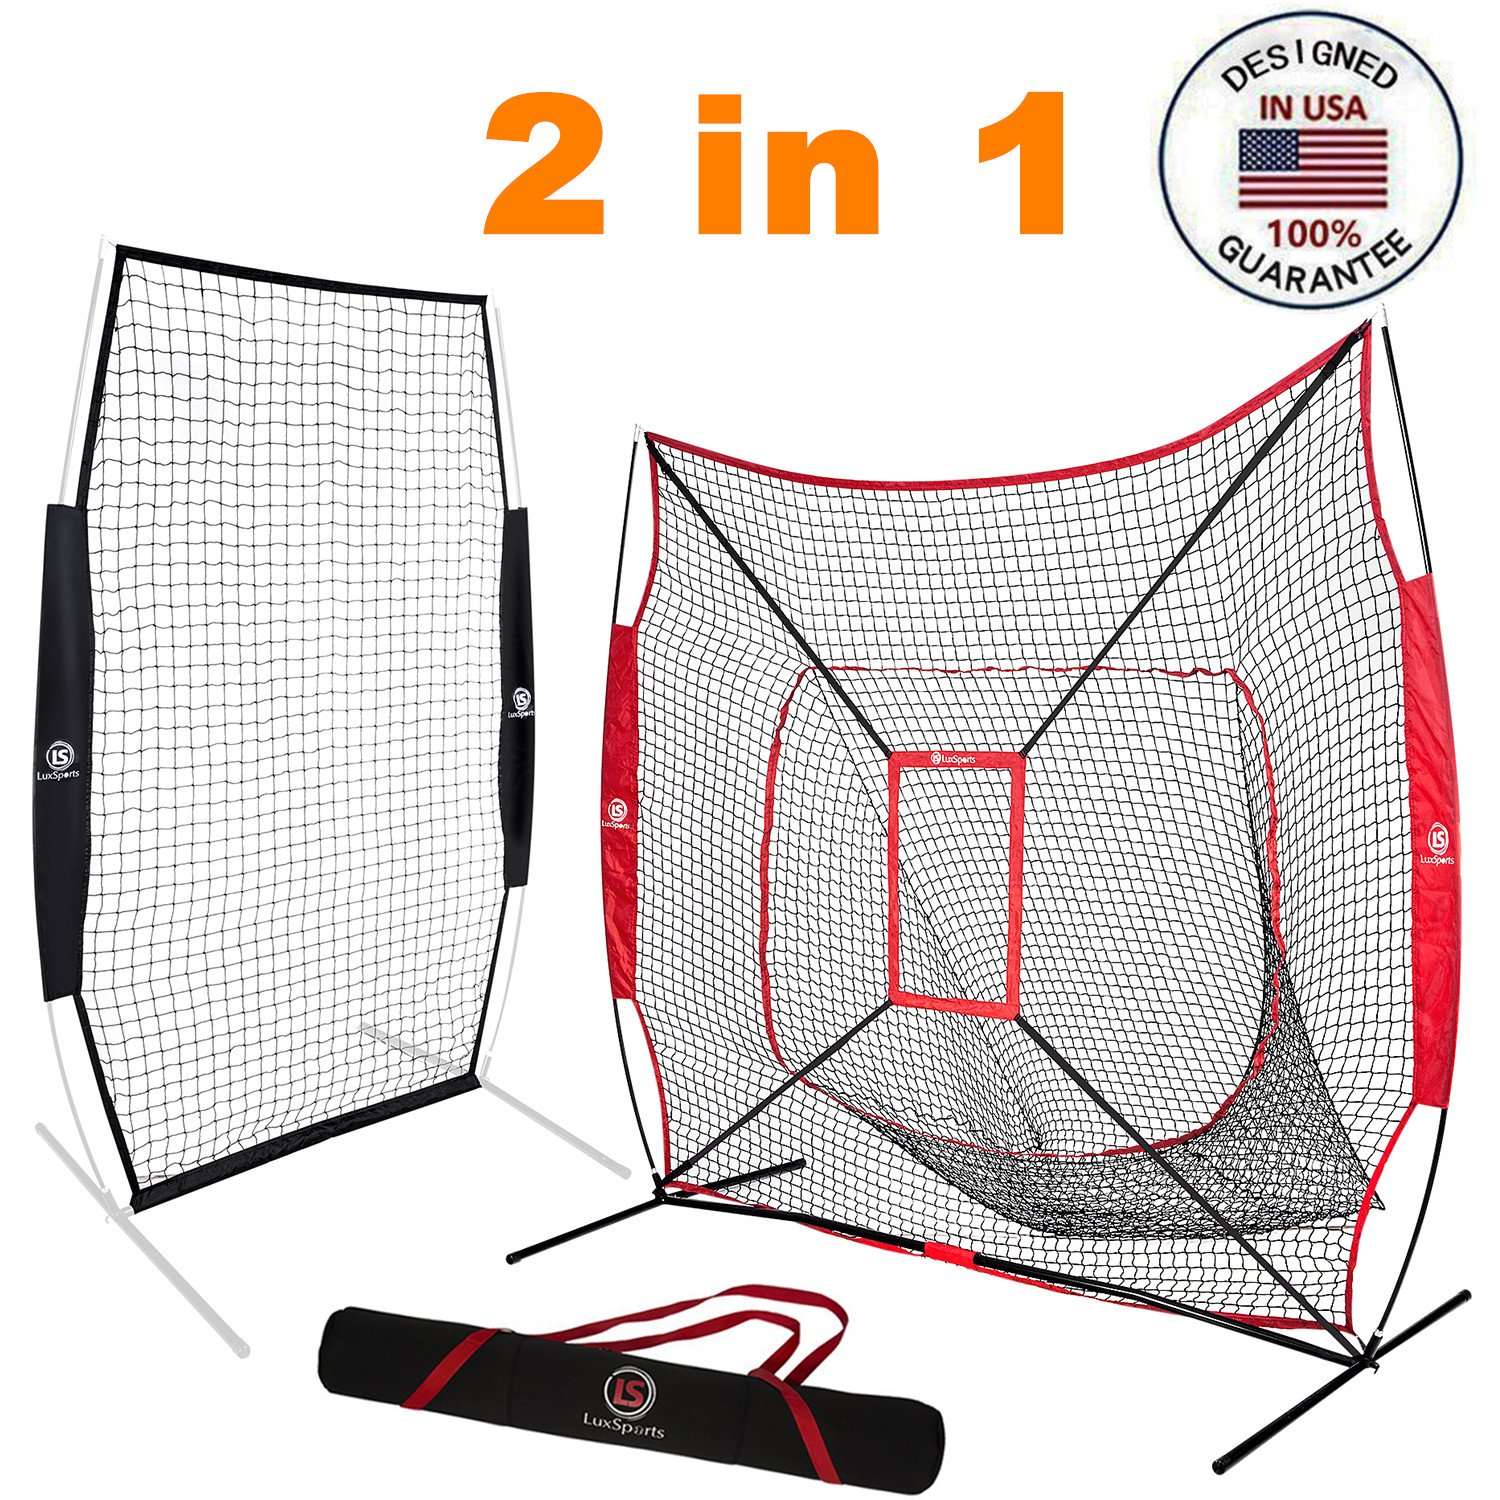 LuxSports 7X7 Commercial Grade Heavy Duty Baseball&Softball Practice Net with Strike Zone, Premium Carrying Bag and Stakes for Hitting, Pictching, Fielding and More